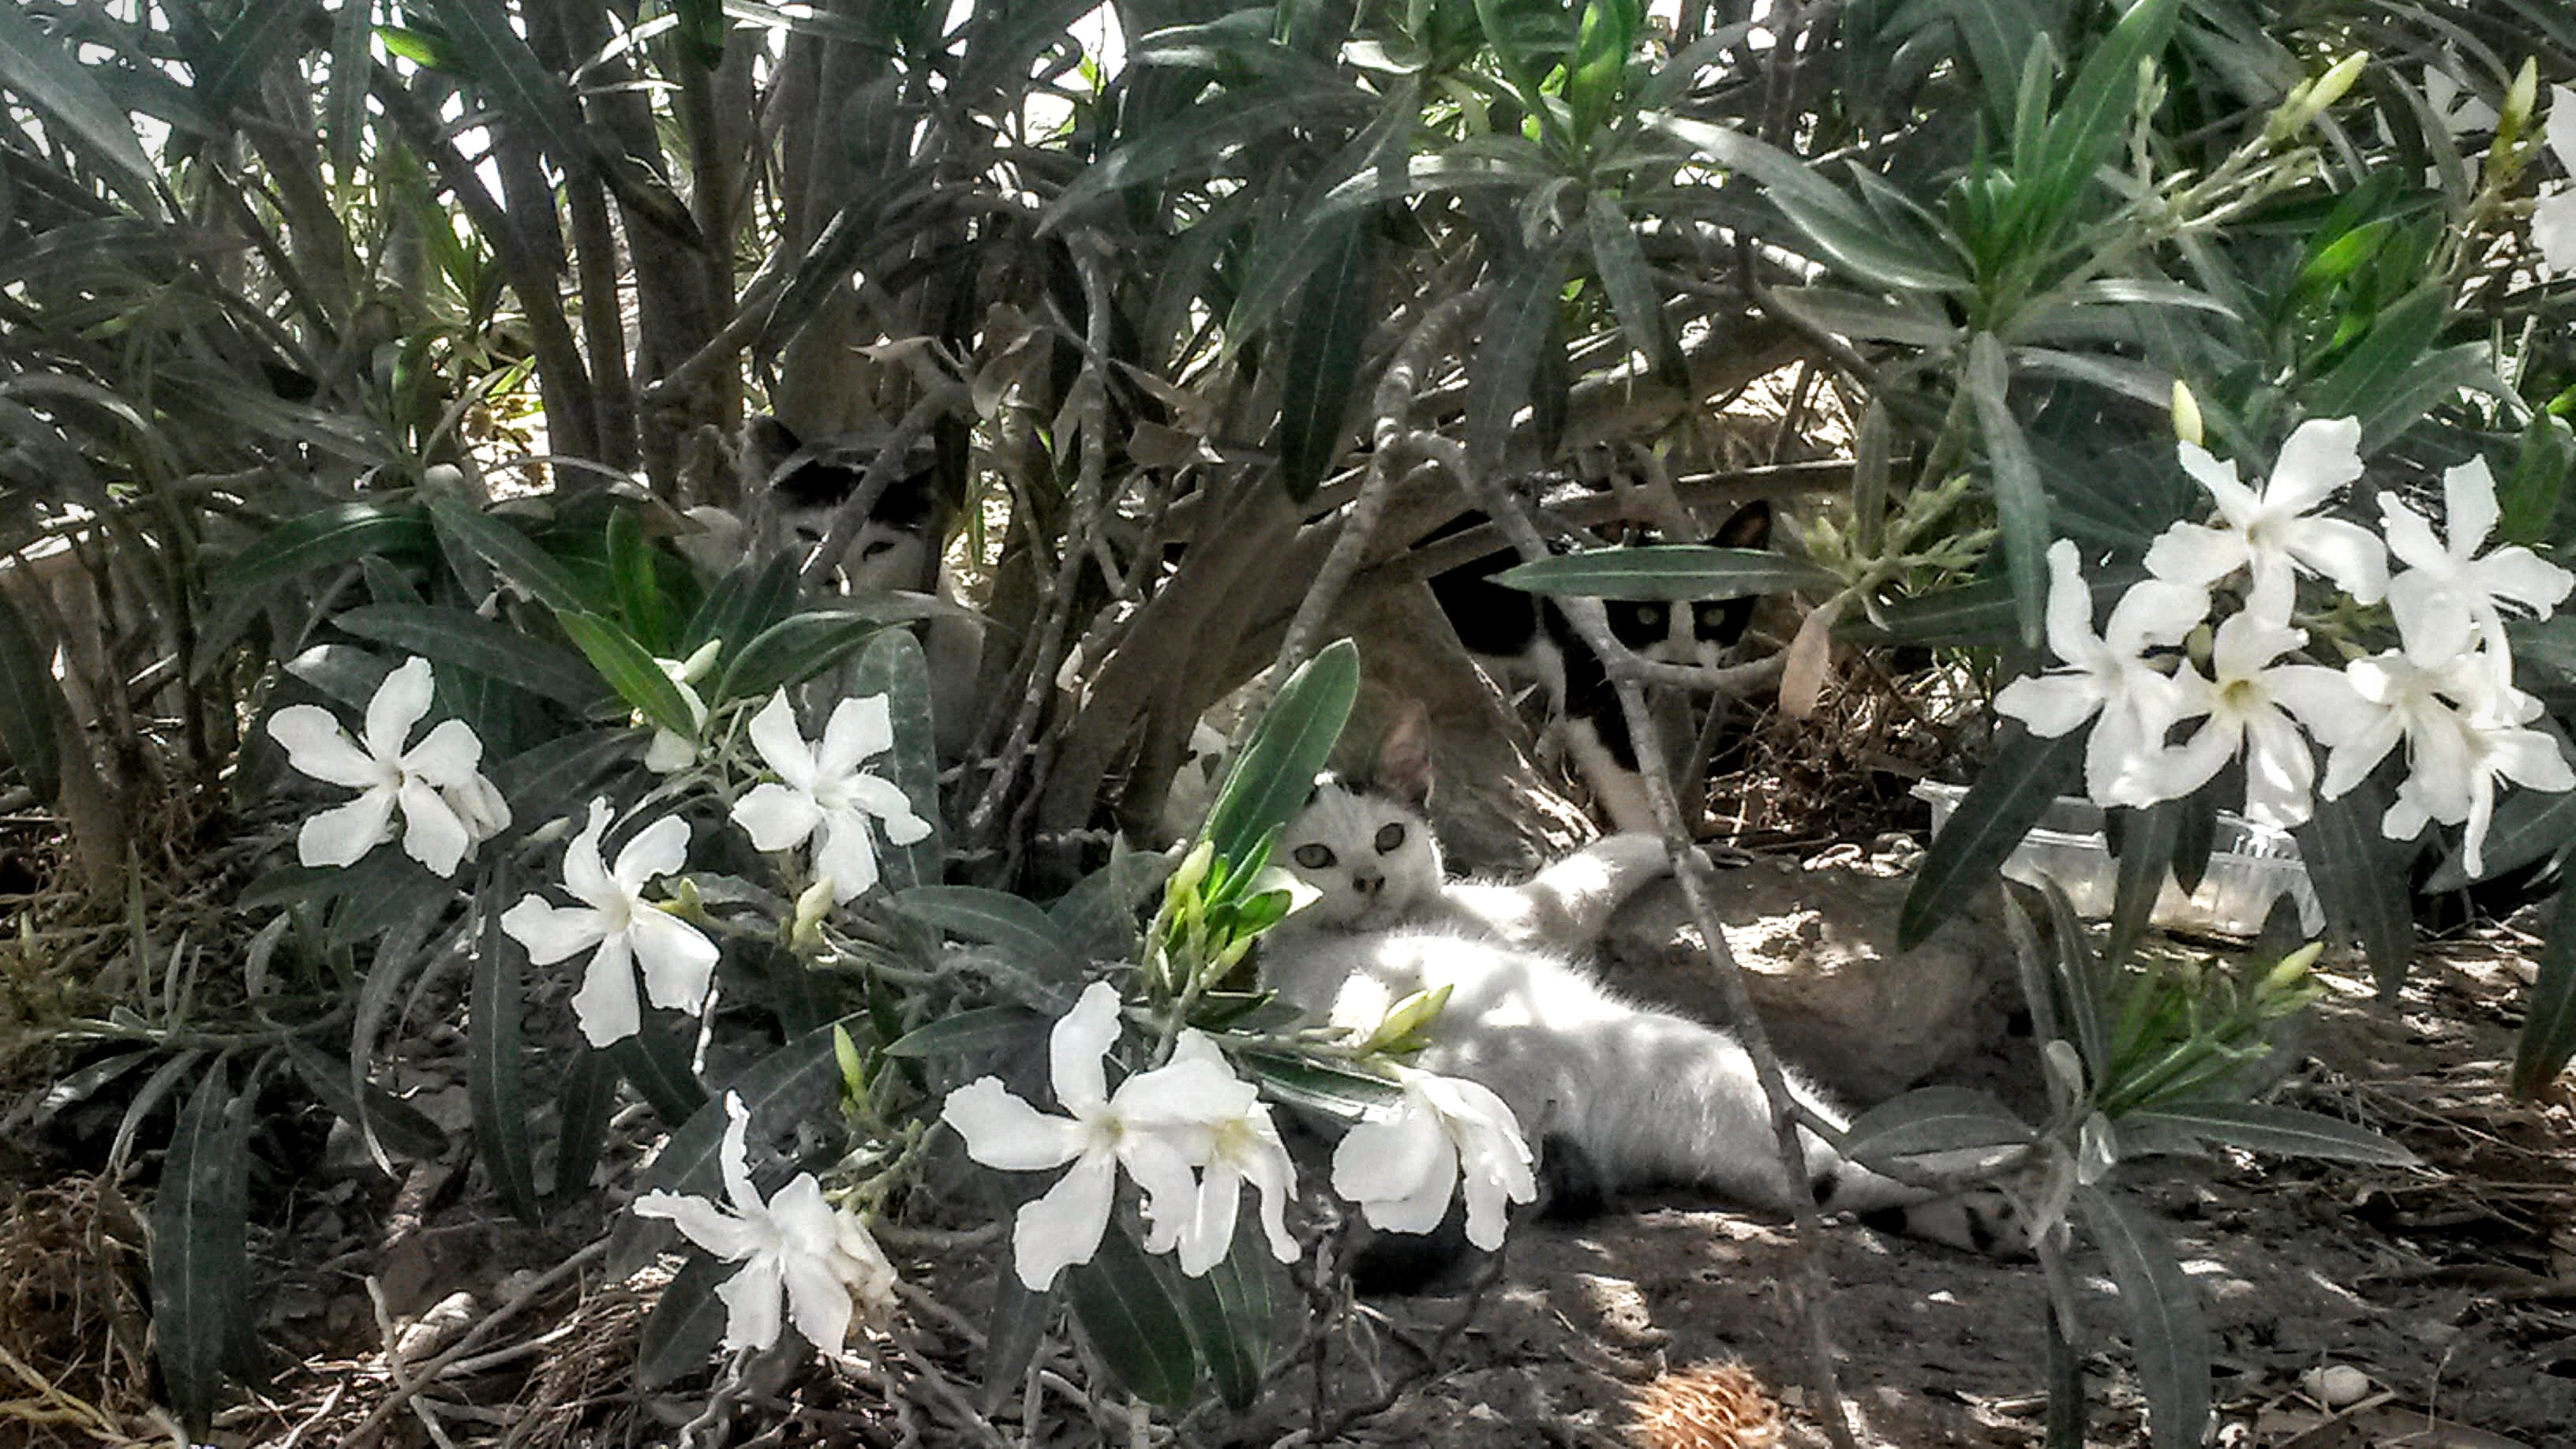 humanlike.co animals cats hiding under oleander